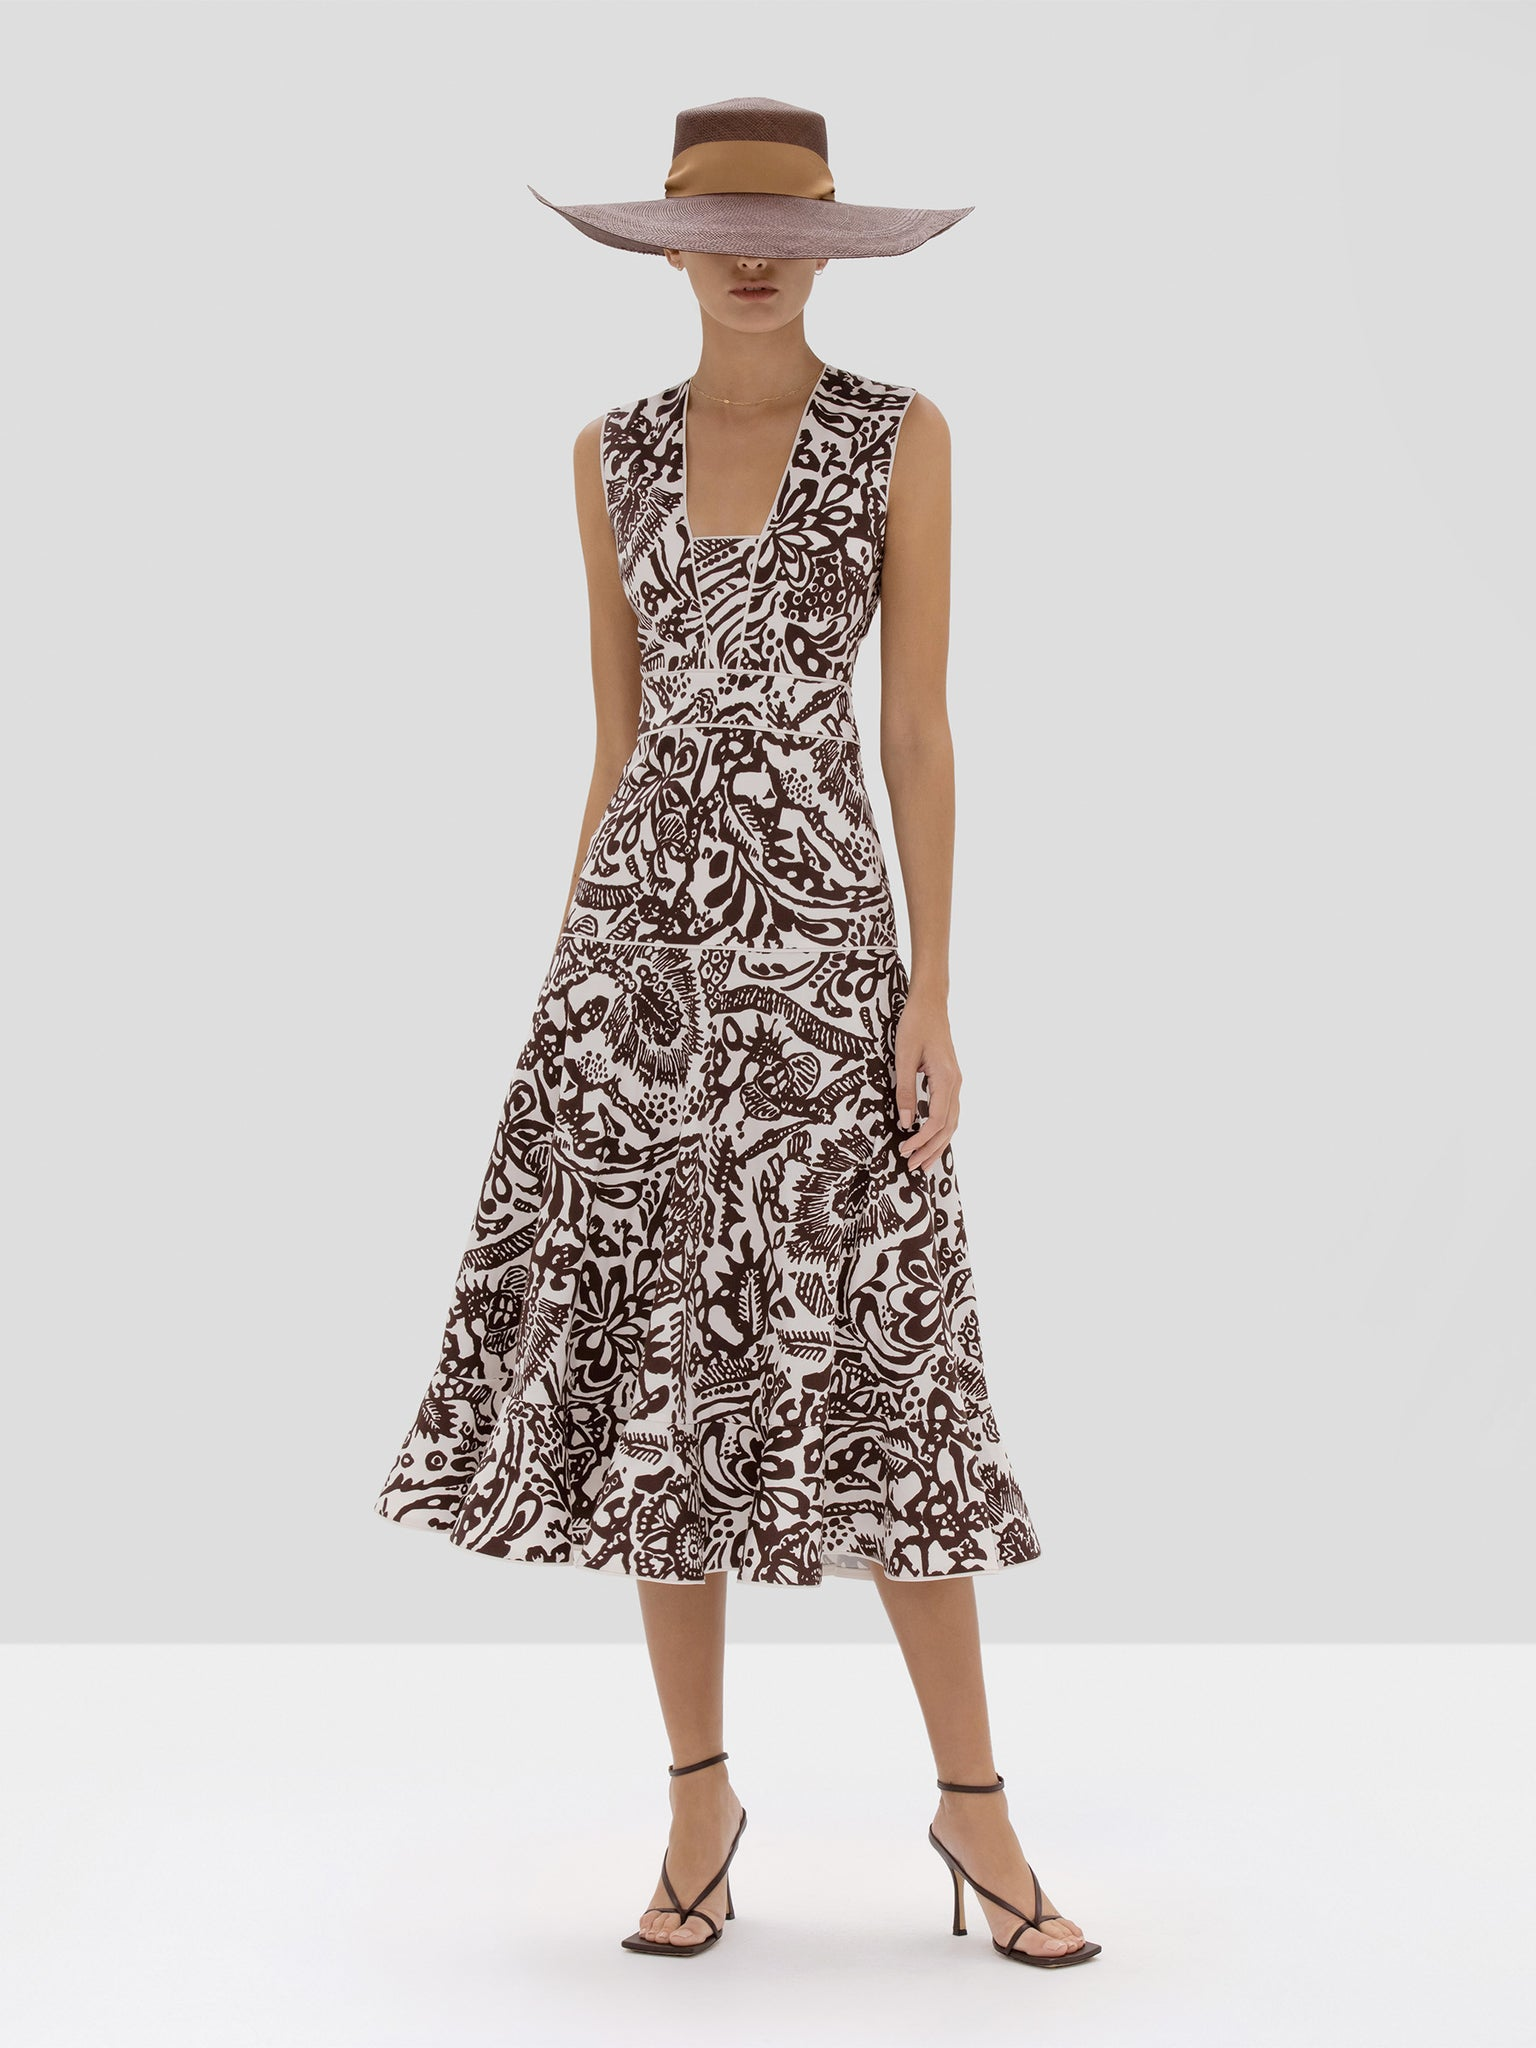 Alexis Marianna Dress in Tropical Brown from Spring Summer 2020